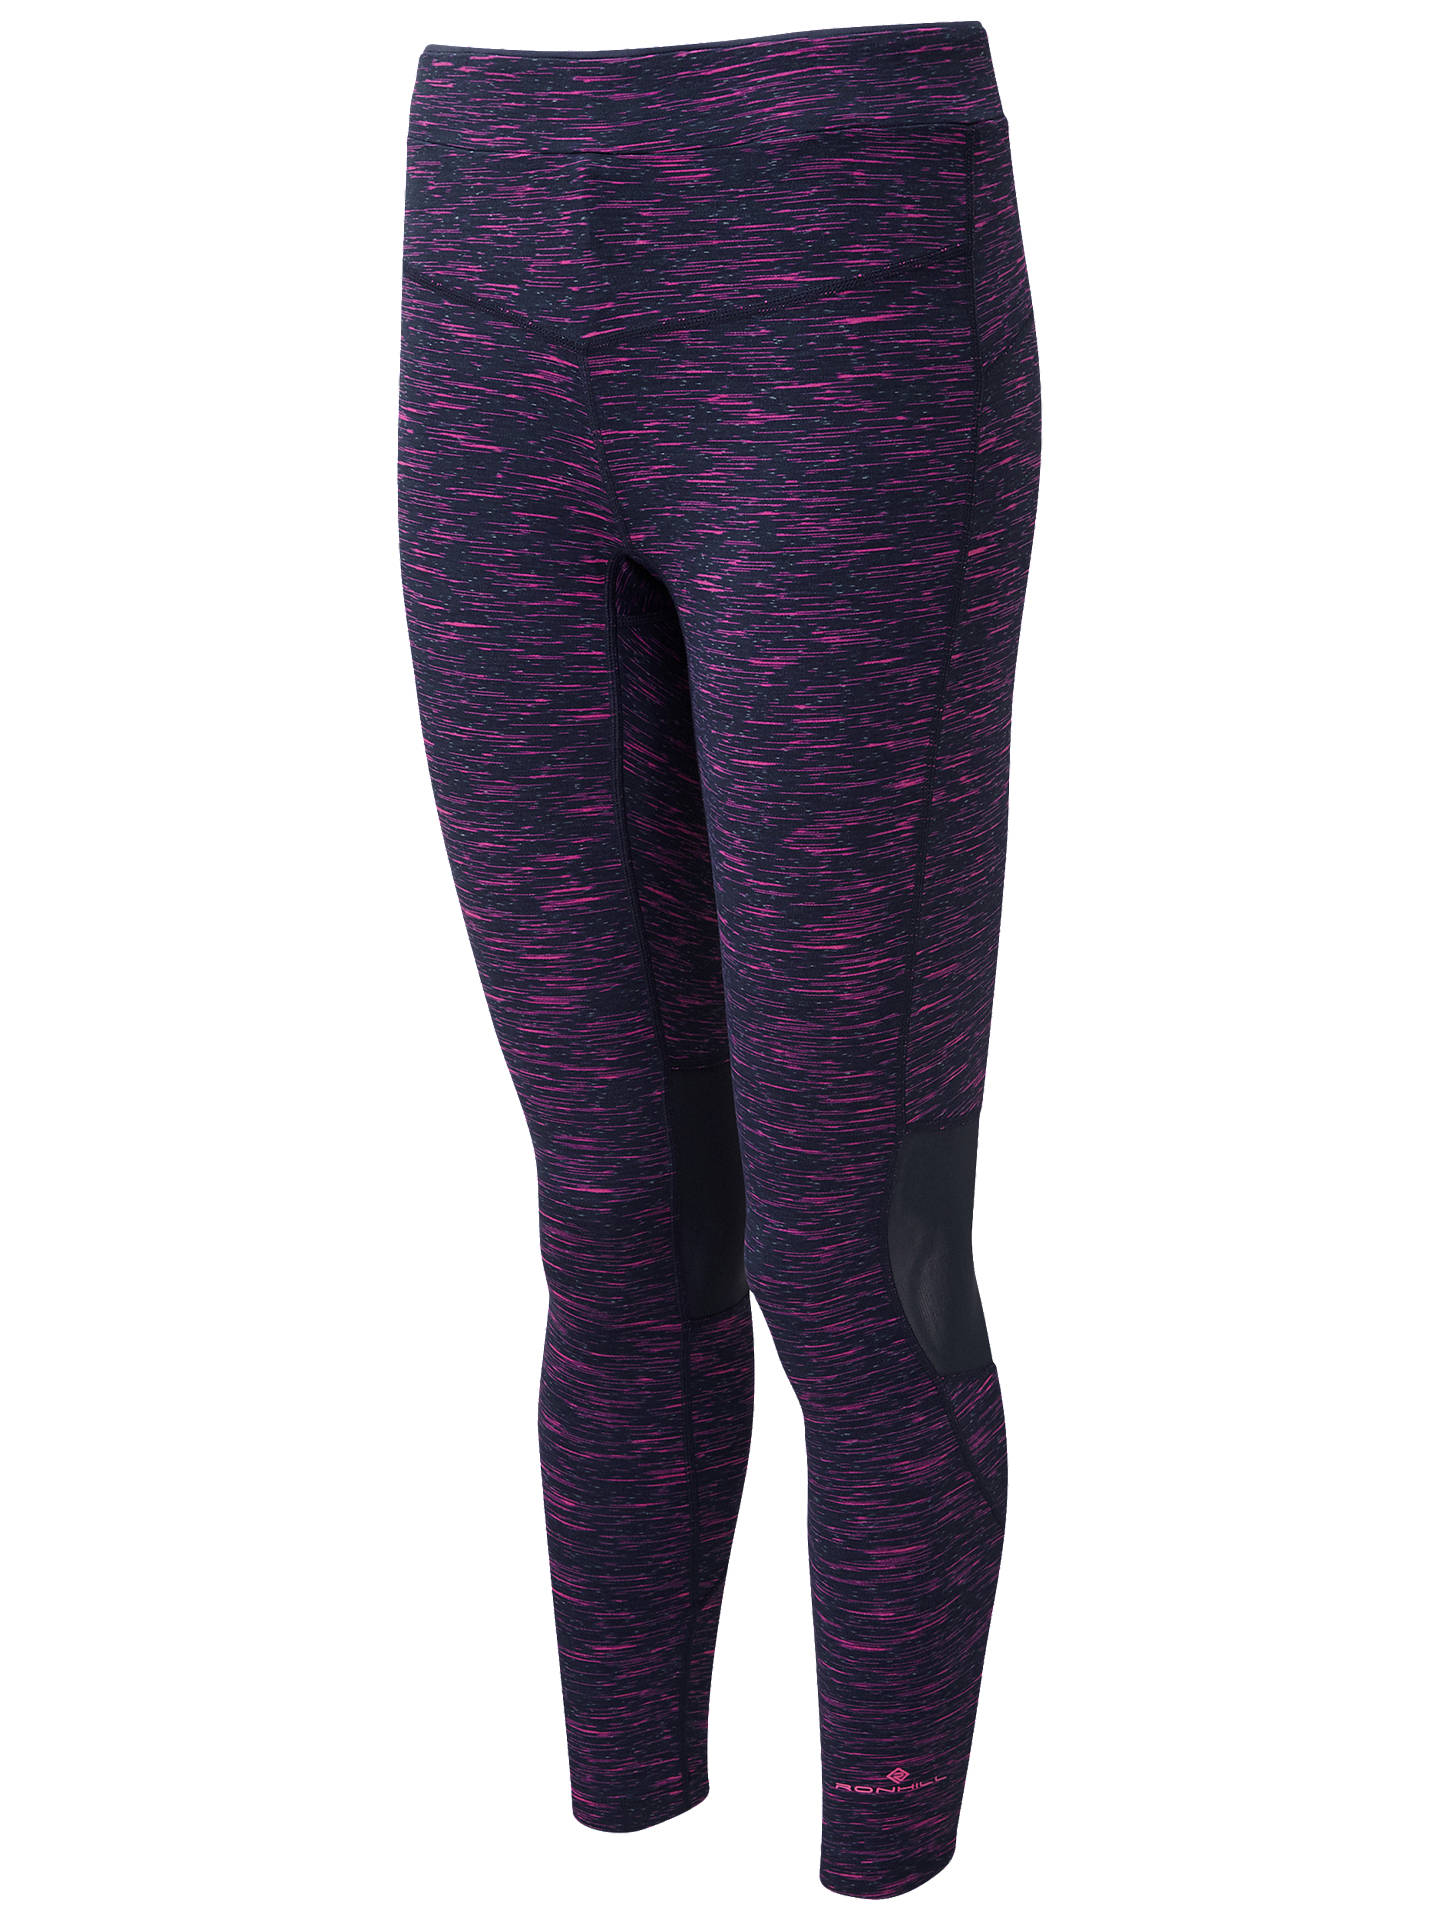 BuyRonhill Infinity Running Tights, Deep Navy/Azalea, 12 Online at johnlewis.com